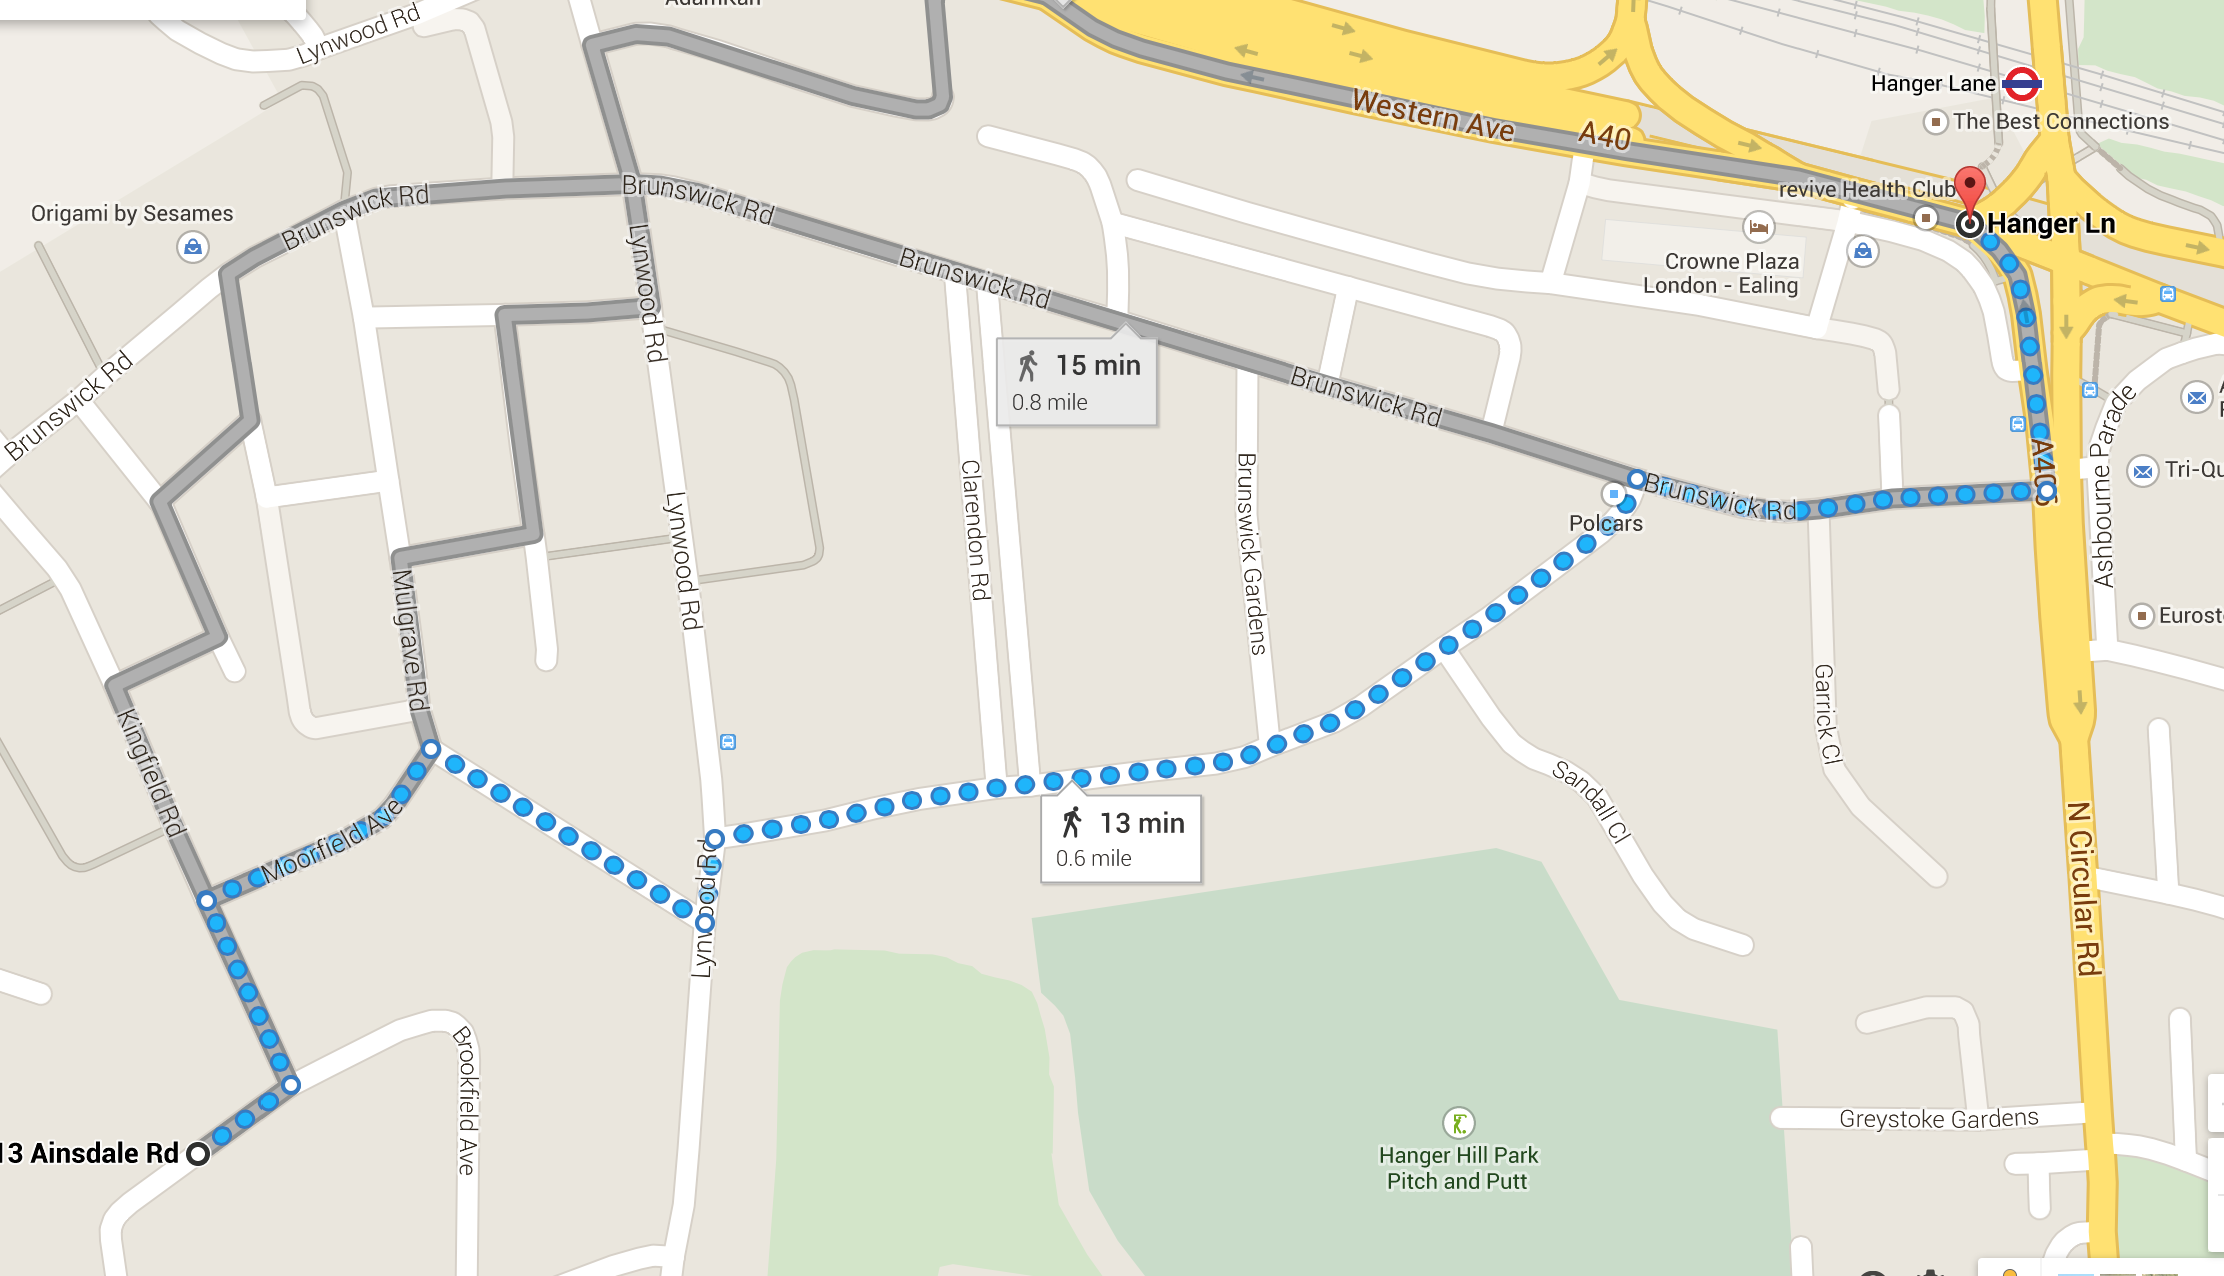 Ainsdale Road walking route